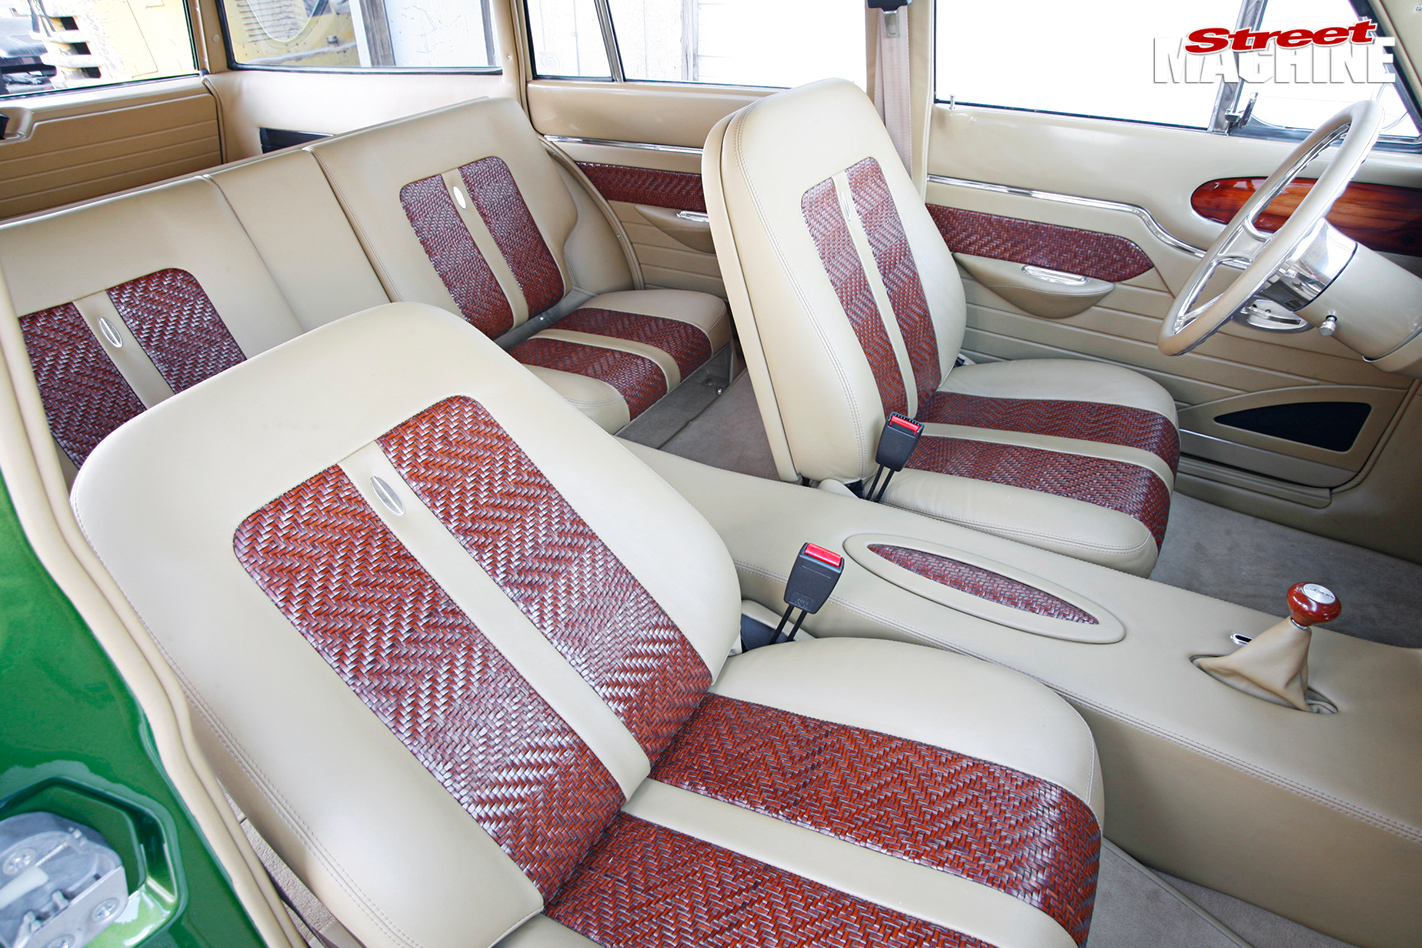 1963-FORD-FALCON-SQUIRE-WAGON-interior